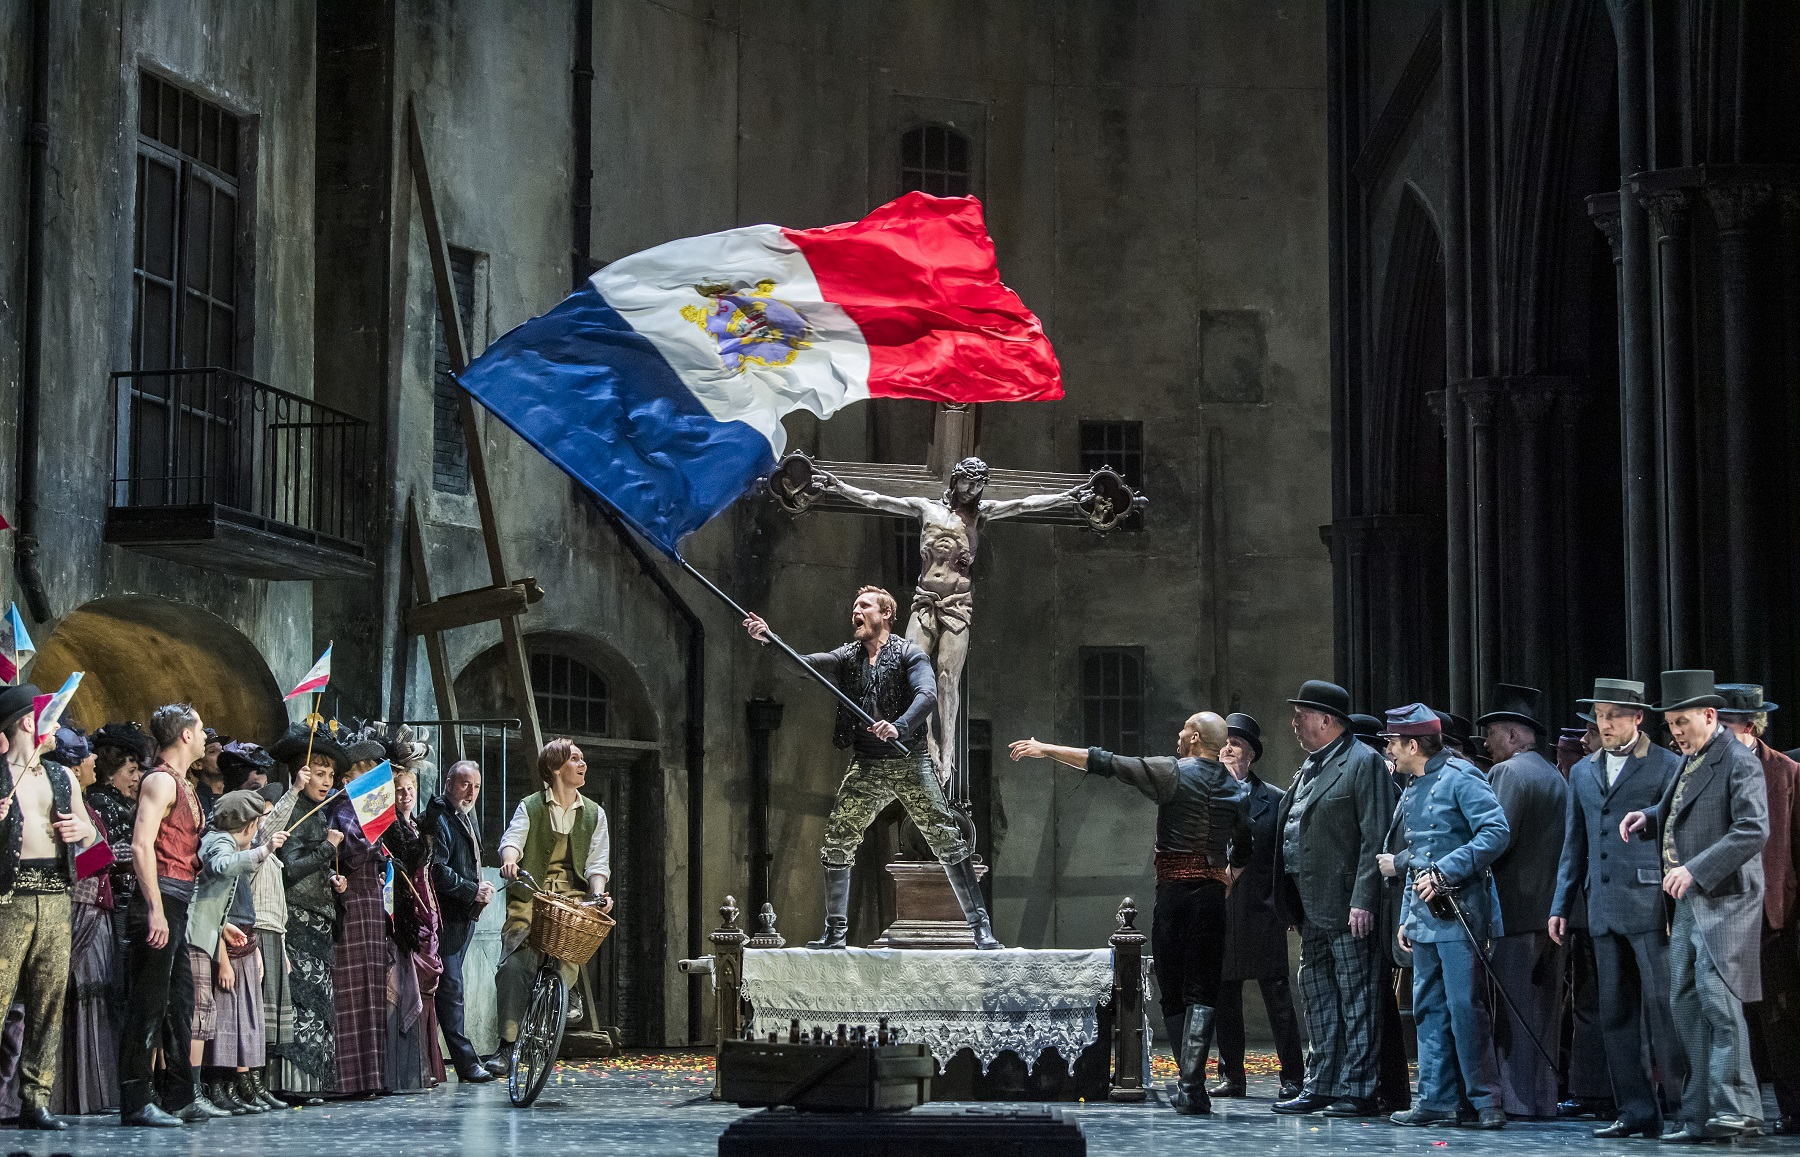 A scene from Faust by Gounod @ Royal Opera House. Directed by David McVicar. Conductor, Dan Ettinger. (Opening 11-04-19)